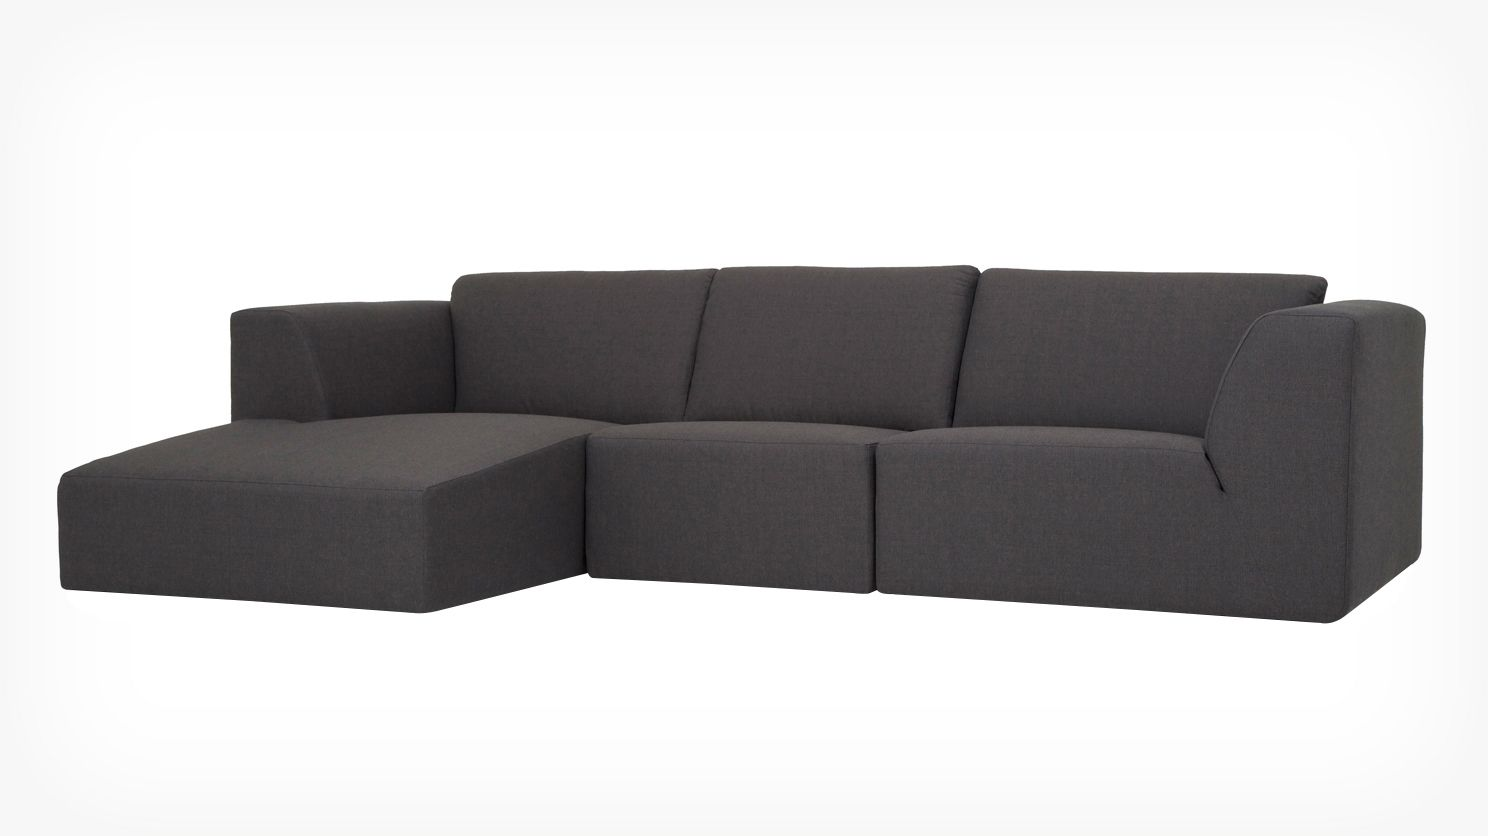 morten piece sectional sofa with chaise  fabric  eq modern  - morten piece sectional sofa with chaise  fabric  eq modern furniture